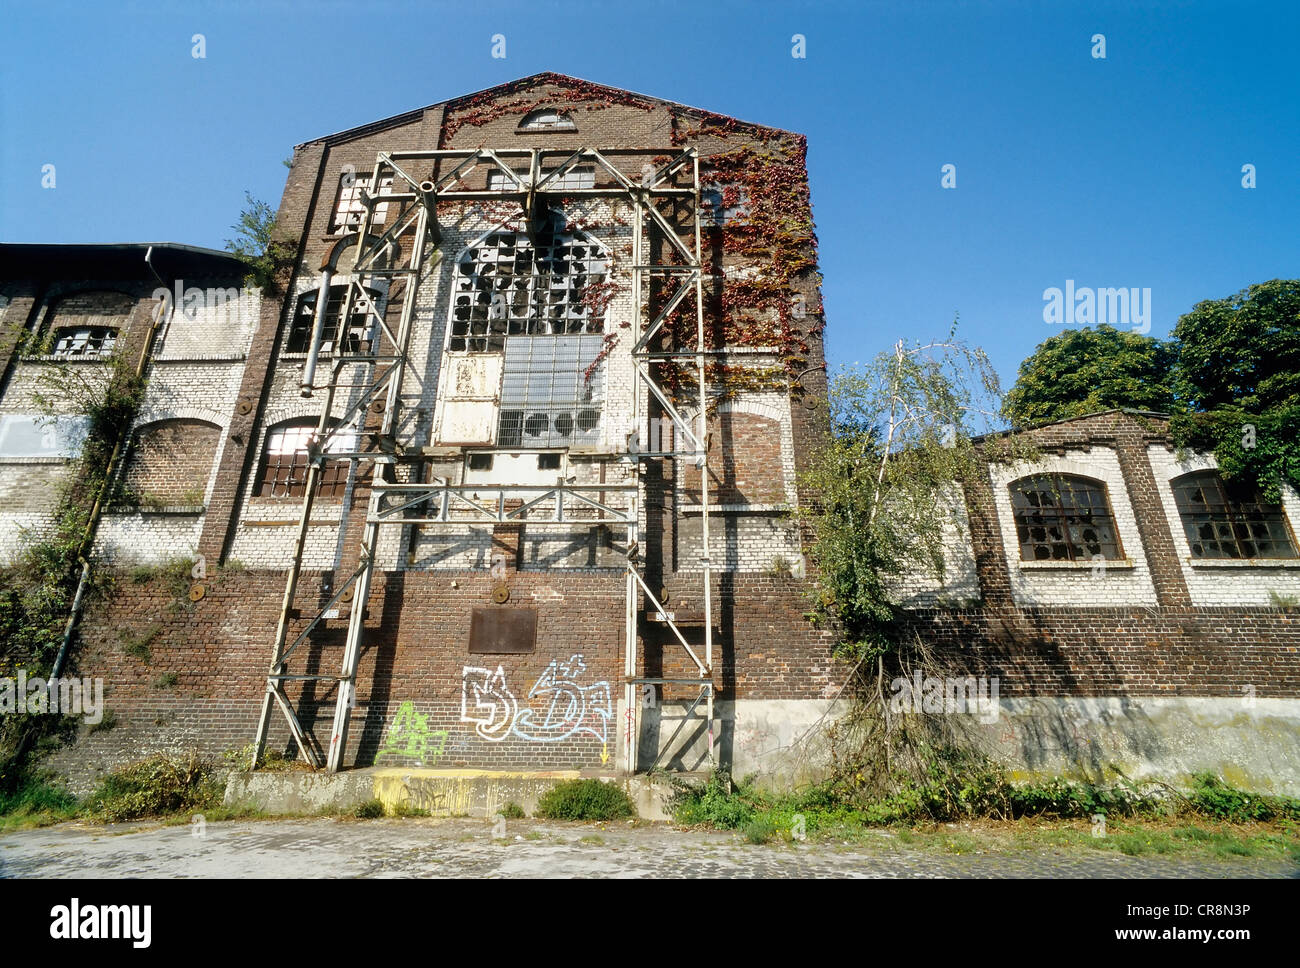 Ruined storage warehouse, Alter Rheinhafen harbour, Uerdingen district, Krefeld, North Rhine-Westphalia, Germany, - Stock Image